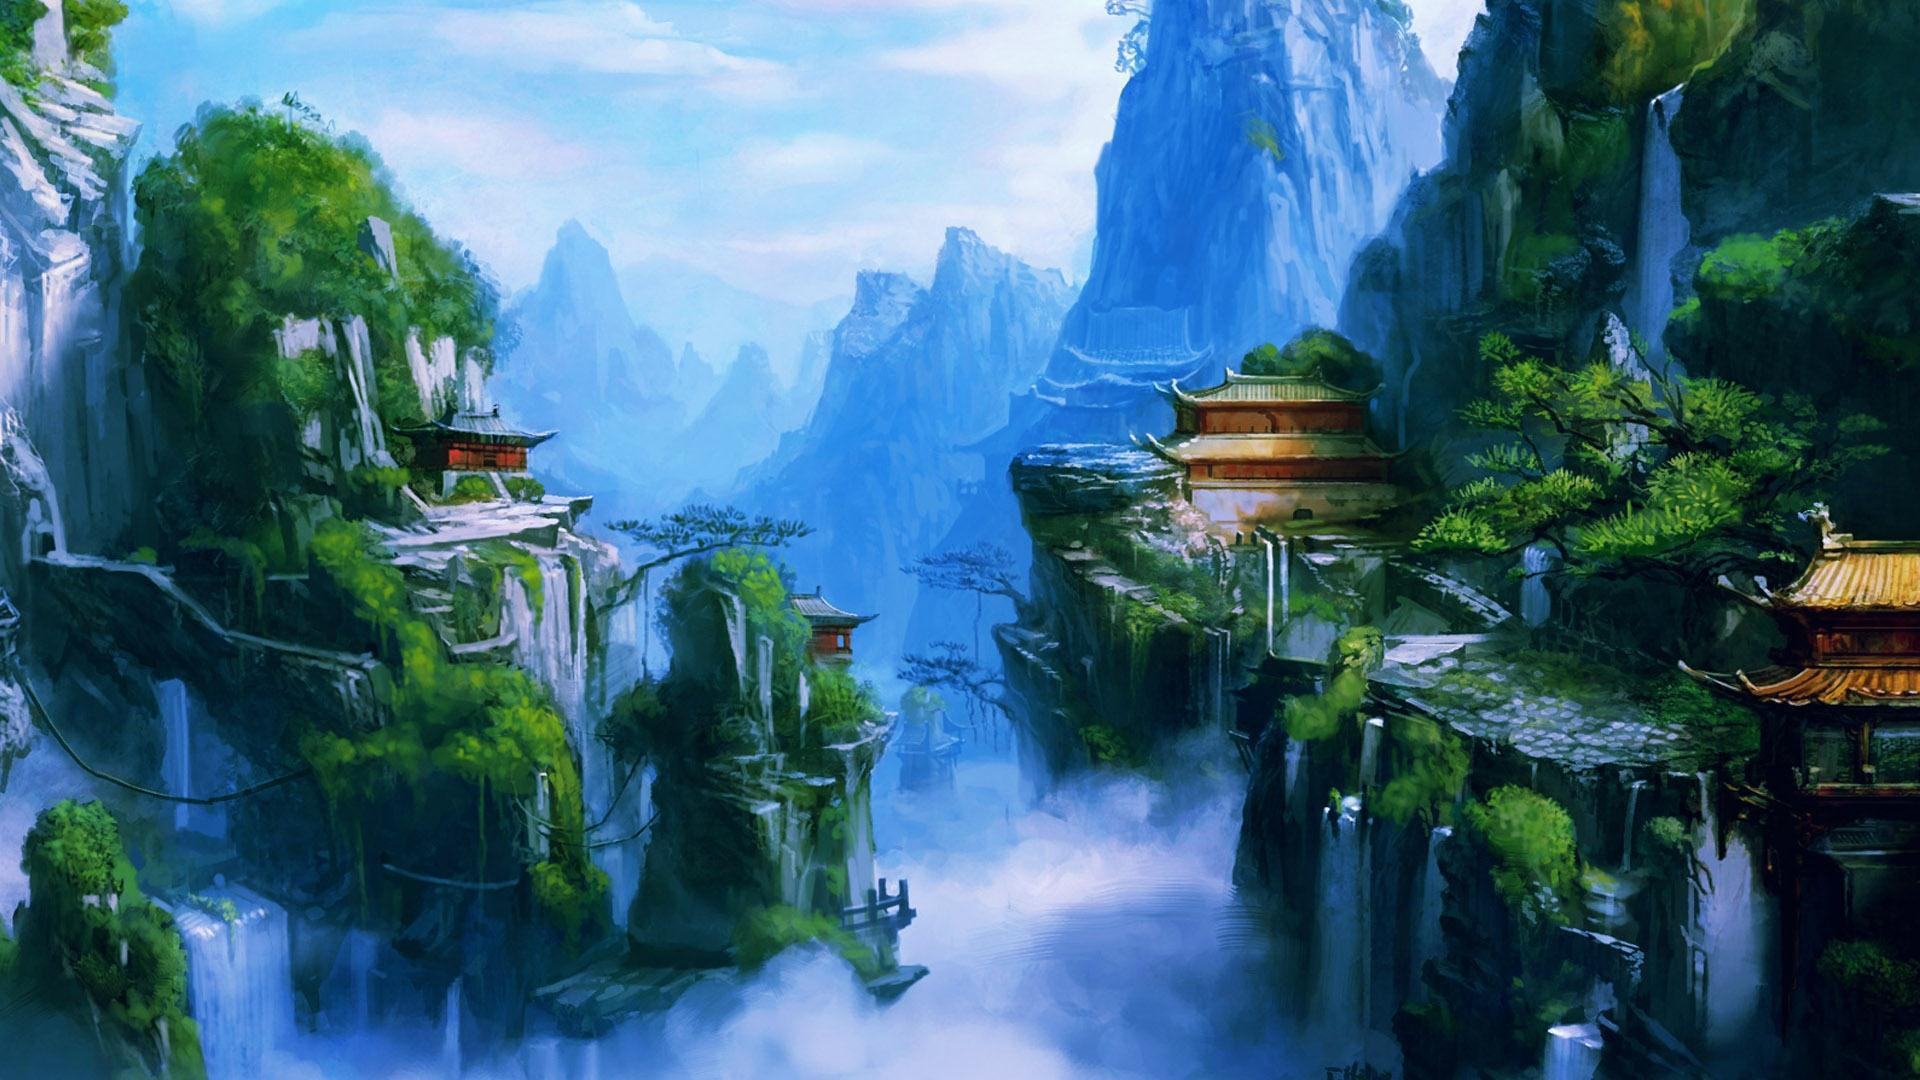 Best ideas about Anime Landscape Wallpaper . Save or Pin Free Fantasy Landscape Backgrounds Now.